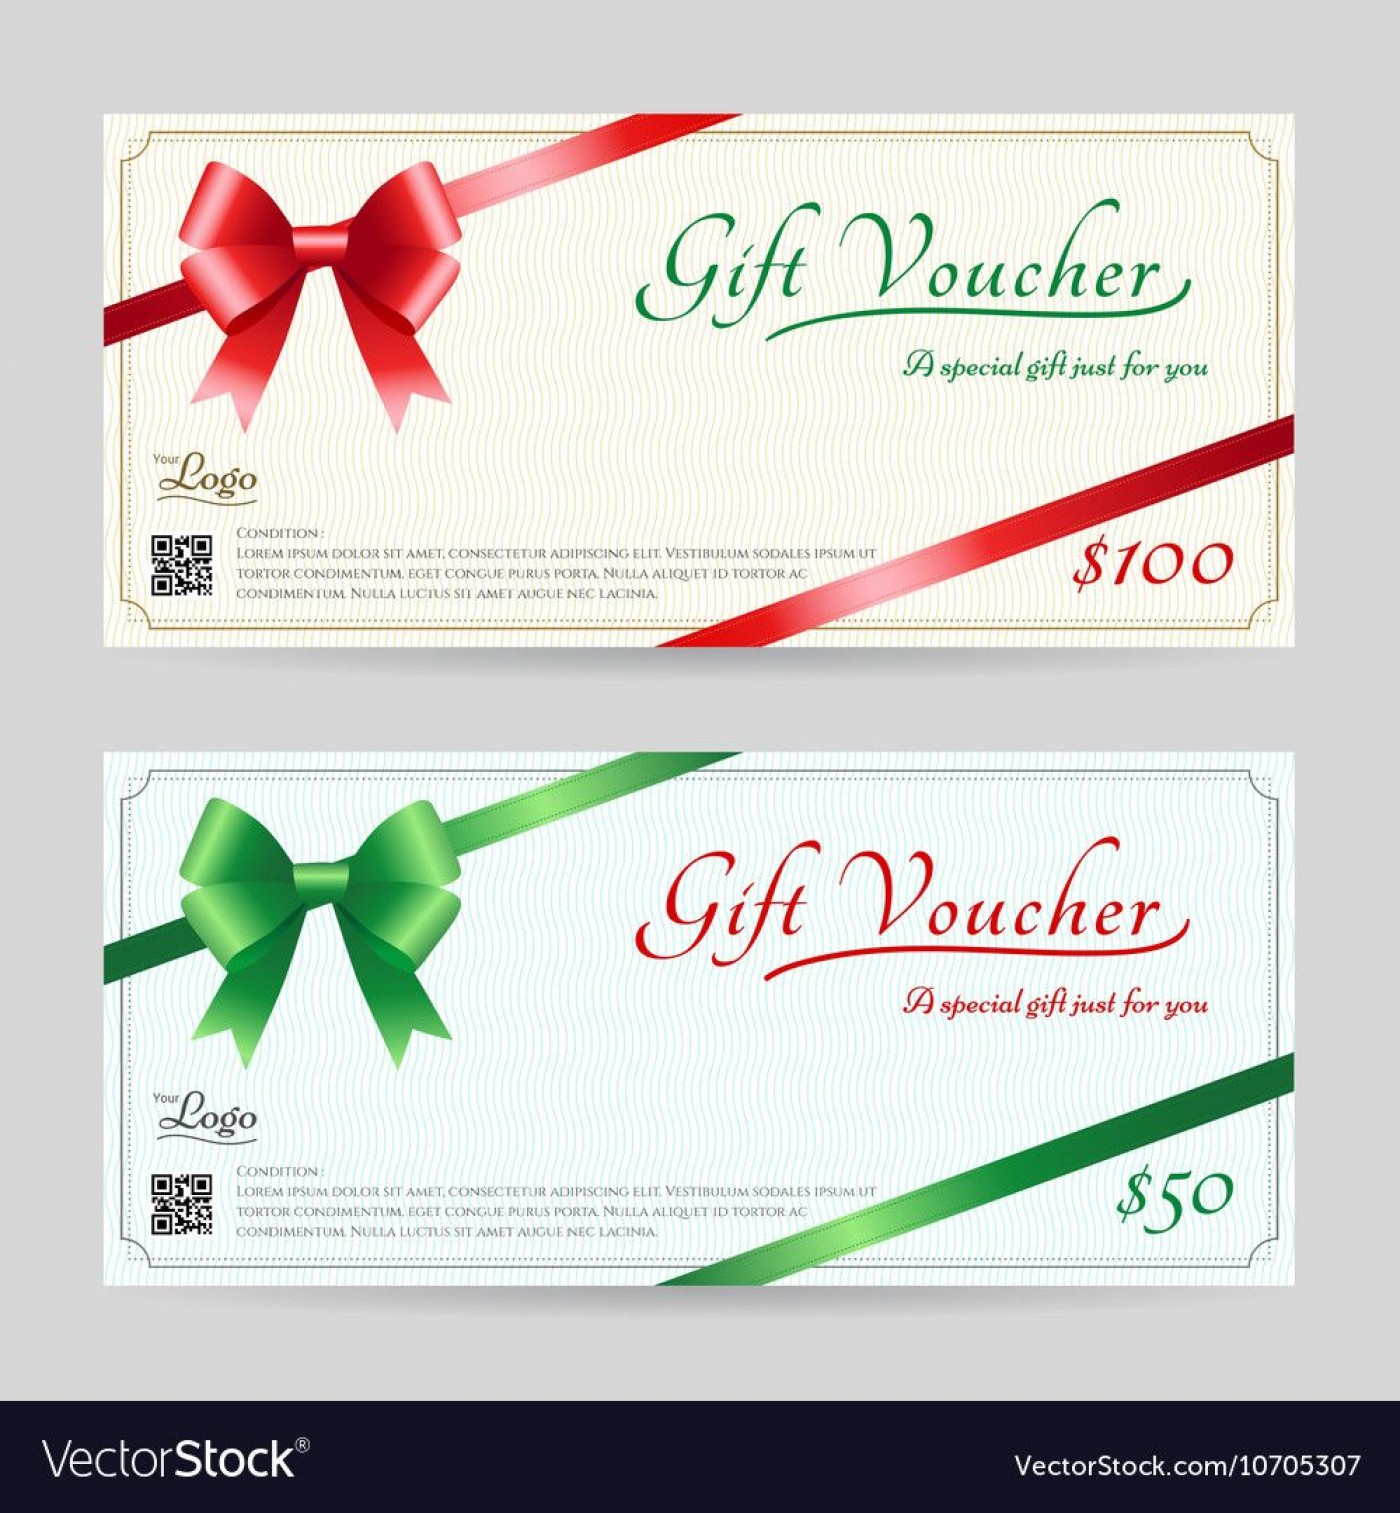 005 Fascinating Template For Christma Gift Certificate Free Sample  Voucher Uk Editable Download Microsoft Word1400